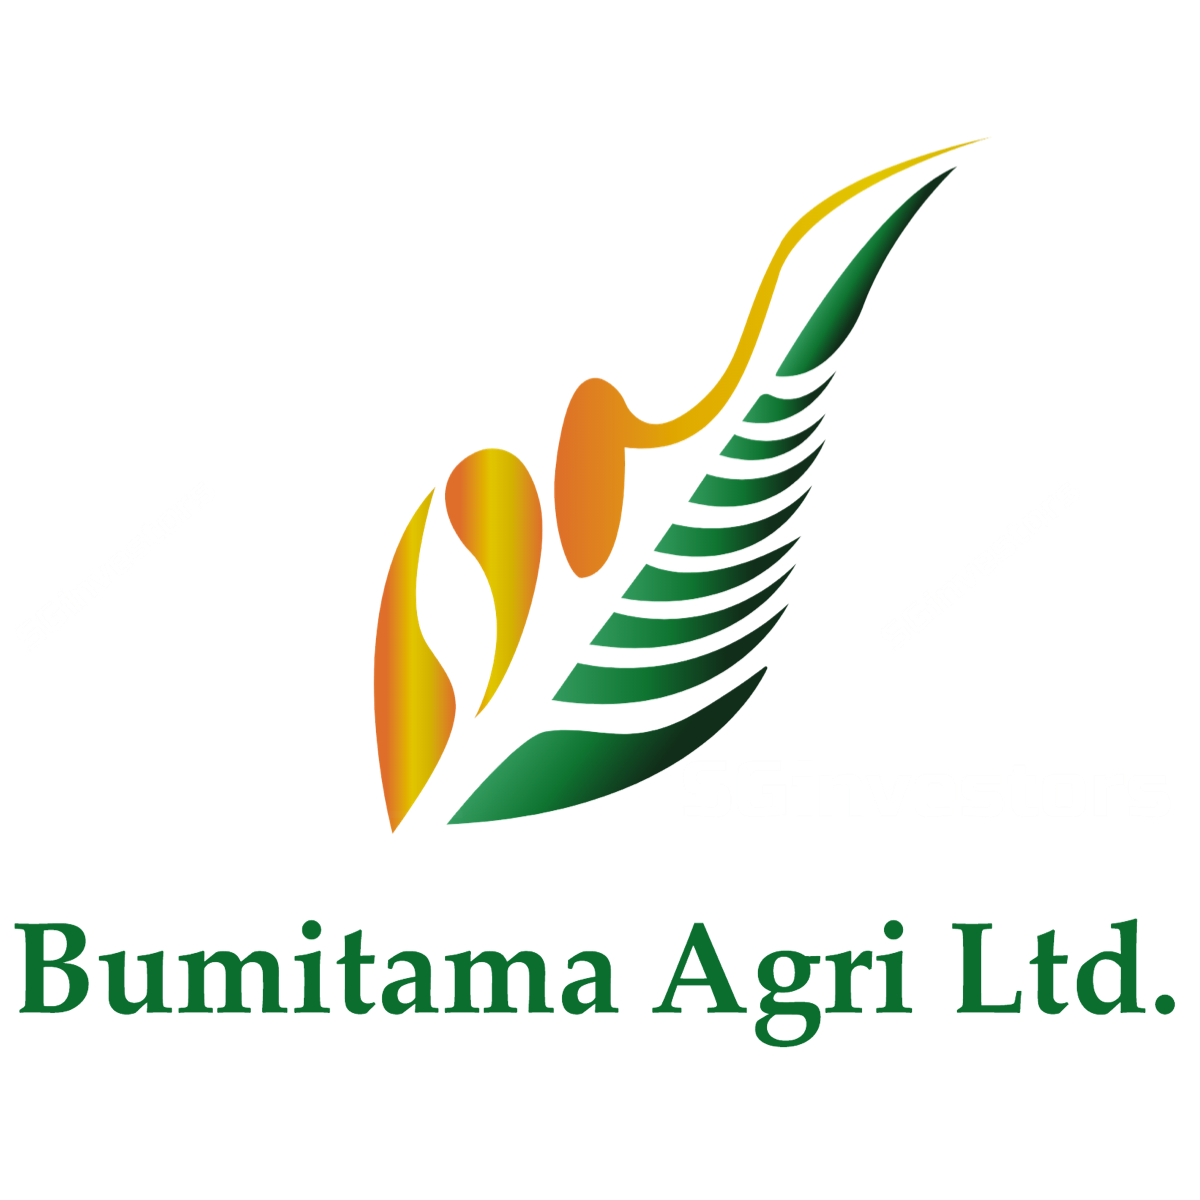 Bumitama Agri (BAL SP) - UOB Kay Hian 2017-10-24: Expect Strong Production In 4Q17